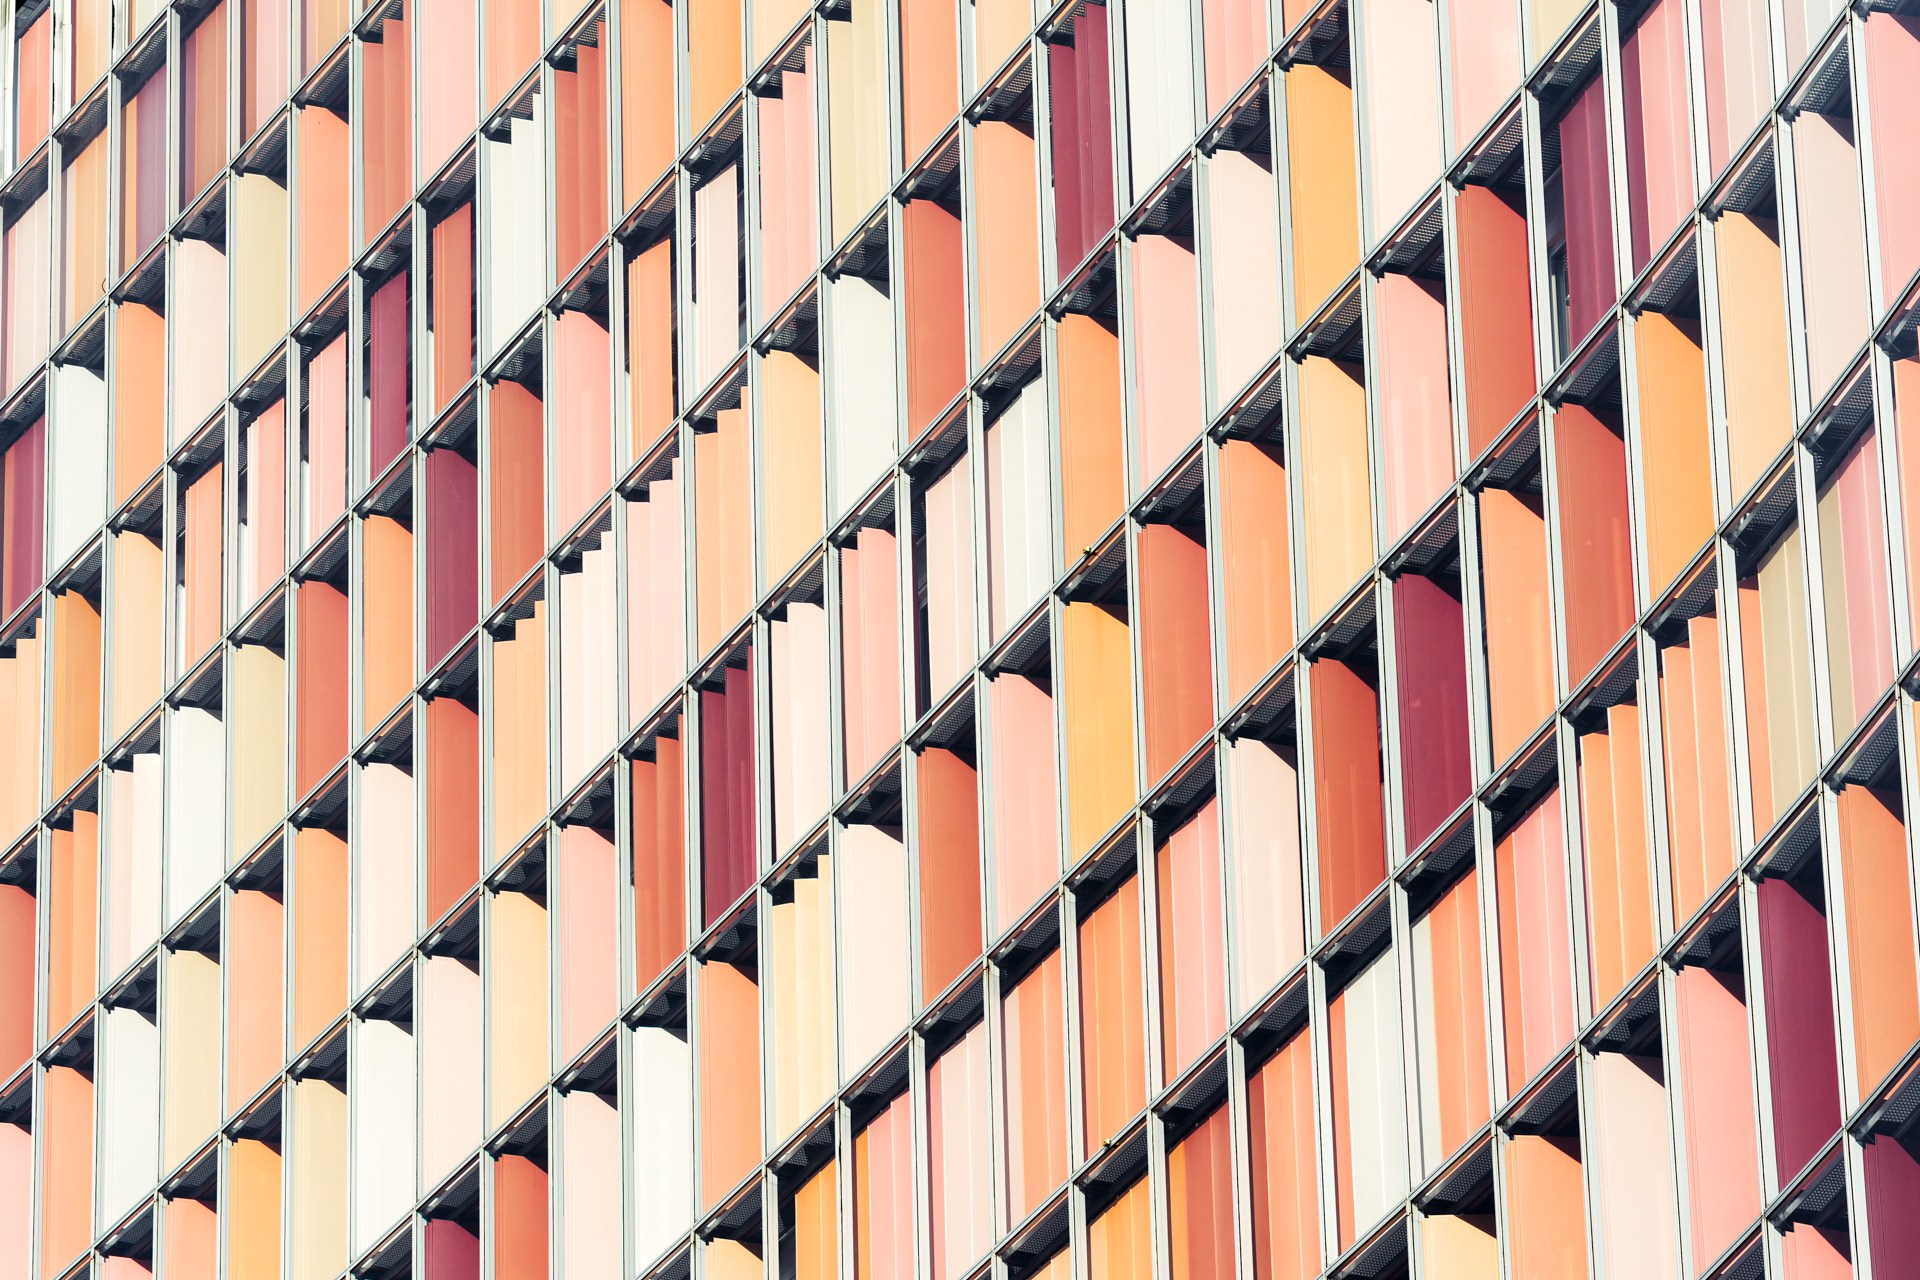 The Vivid Colors & Striking Textures of Berlin